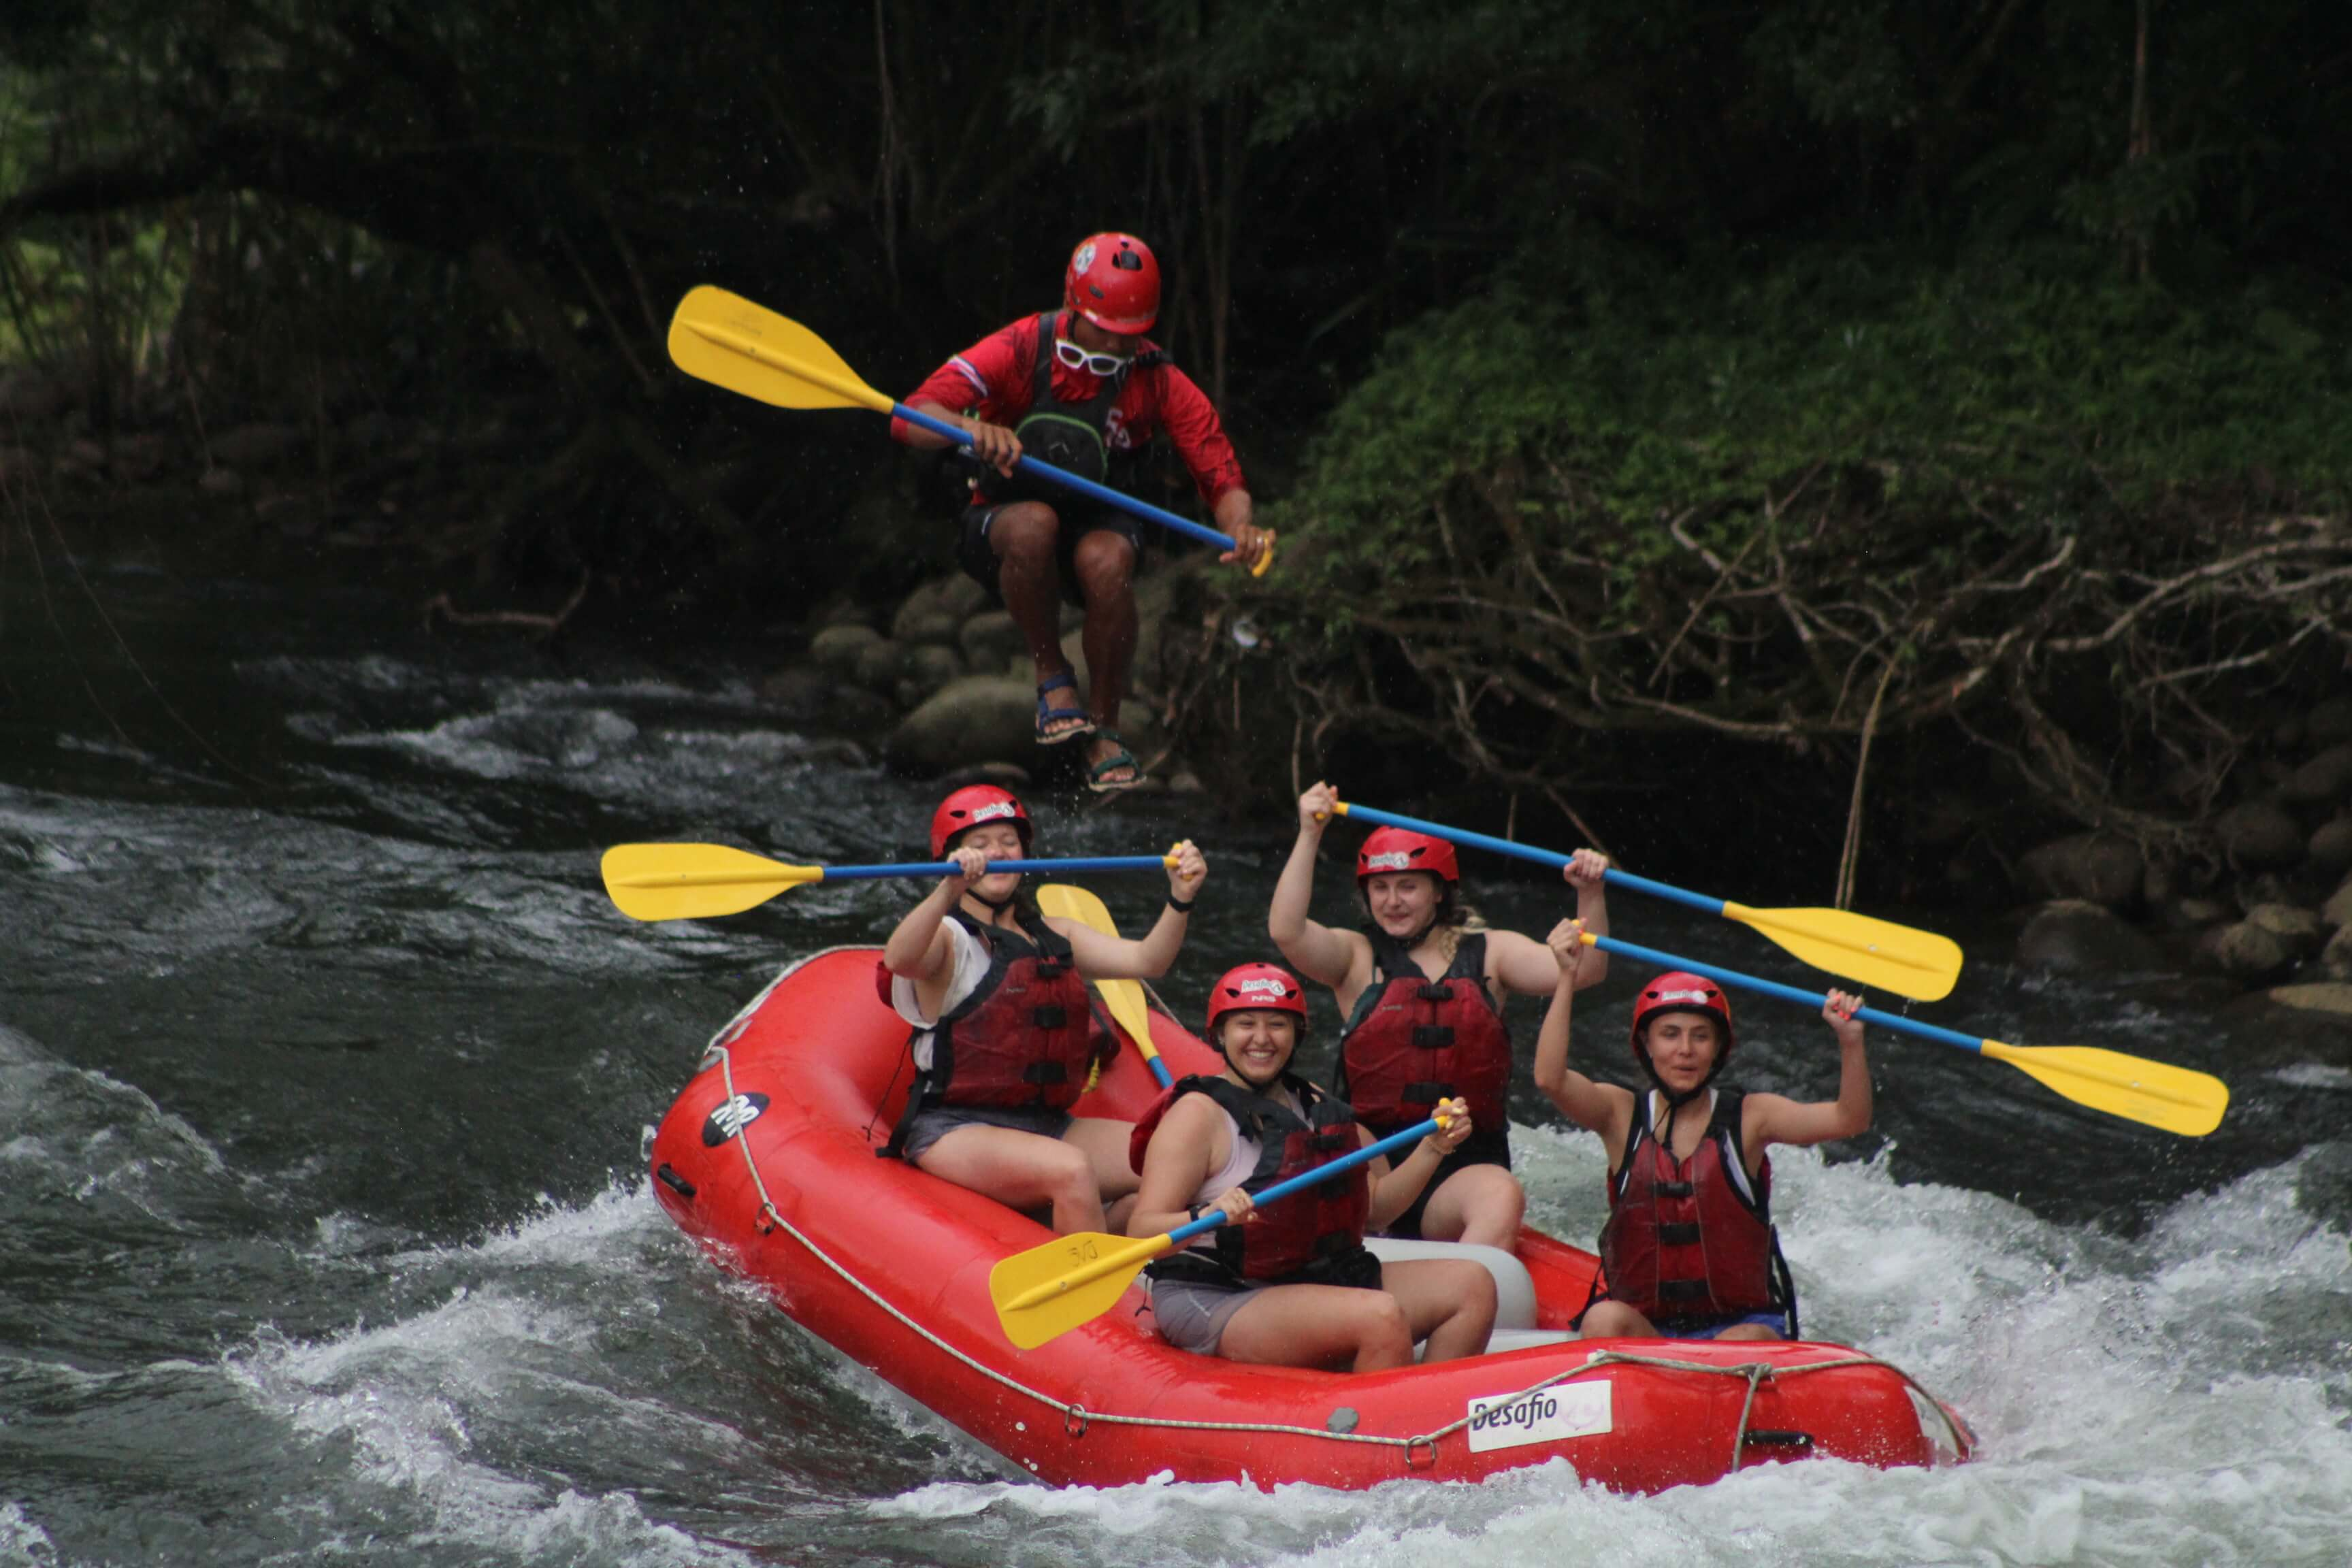 Get a private raft guide while white water rafting in Costa Rica with Desafio Adventure Company.